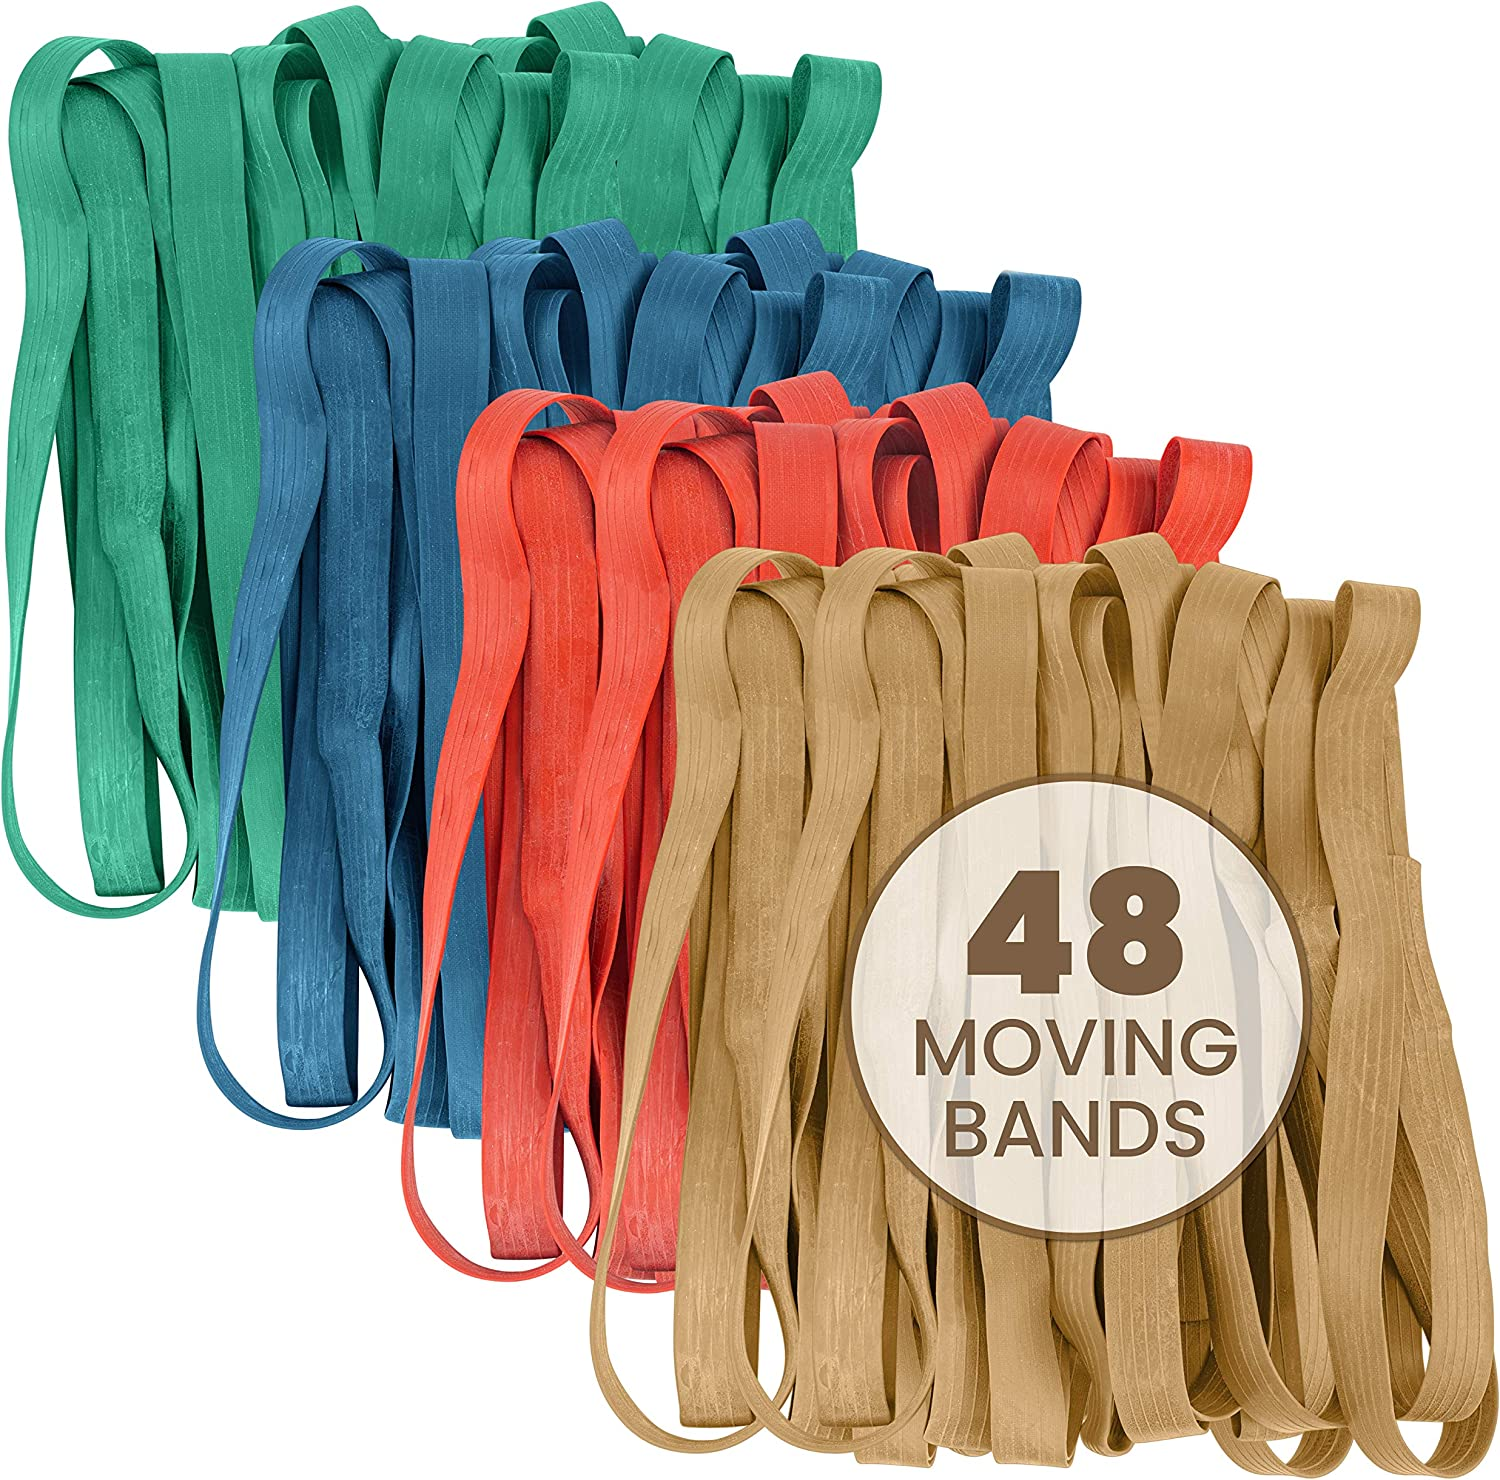 48 Pack Mover Furniture Rubber Bands - Extra Large Rubber Bands for Moving Blankets and Furniture - Variety of Sizes 25in, 30in, 36in & 42in - 48 Moving Bands Total - kitchentoolz